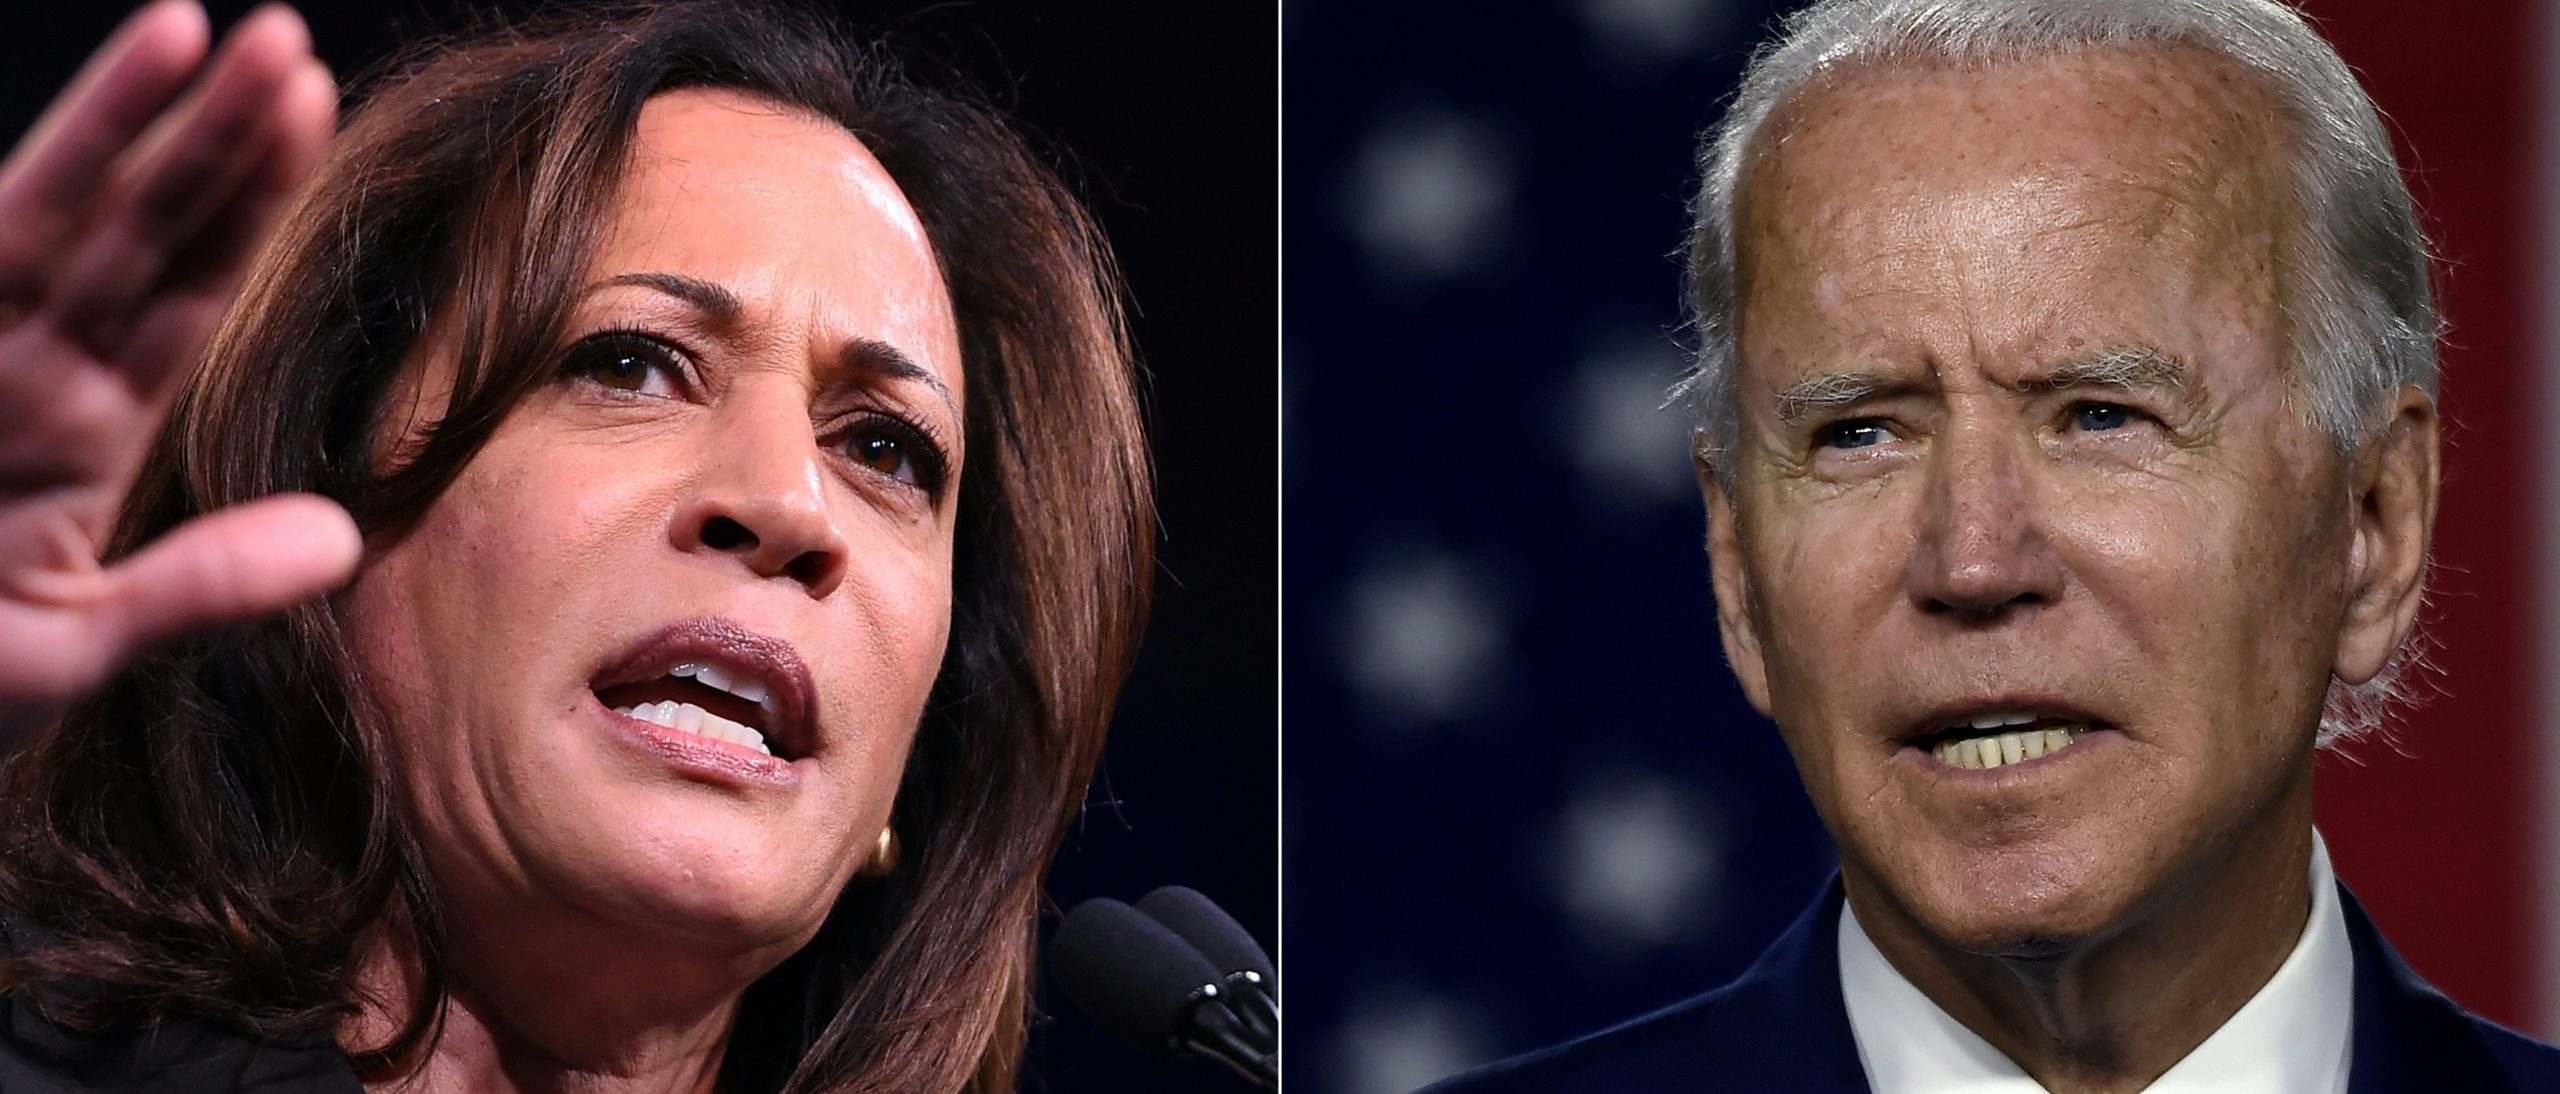 (COMBO) This combination of file pictures created on August 11, 2020 shows (L-R) US Democratic Presidential hopeful US Senator for California Kamala Harris in San Francisco, California on August 23, 2019; and Democratic presidential candidate and former Vice President Joe Biden on July 14, 2020 at the Chase Center in Wilmington, Delaware. - Biden named Kamala Harris, a high-profile black senator from California, as his vice presidential choice on August 11, 2020, capping a months-long search for a Democratic partner to challenge President Donald Trump in November. (Photos by JOSH EDELSON and Olivier DOULIERY / AFP) (Photo by JOSH EDELSON,OLIVIER DOULIERY/AFP via Getty Images)